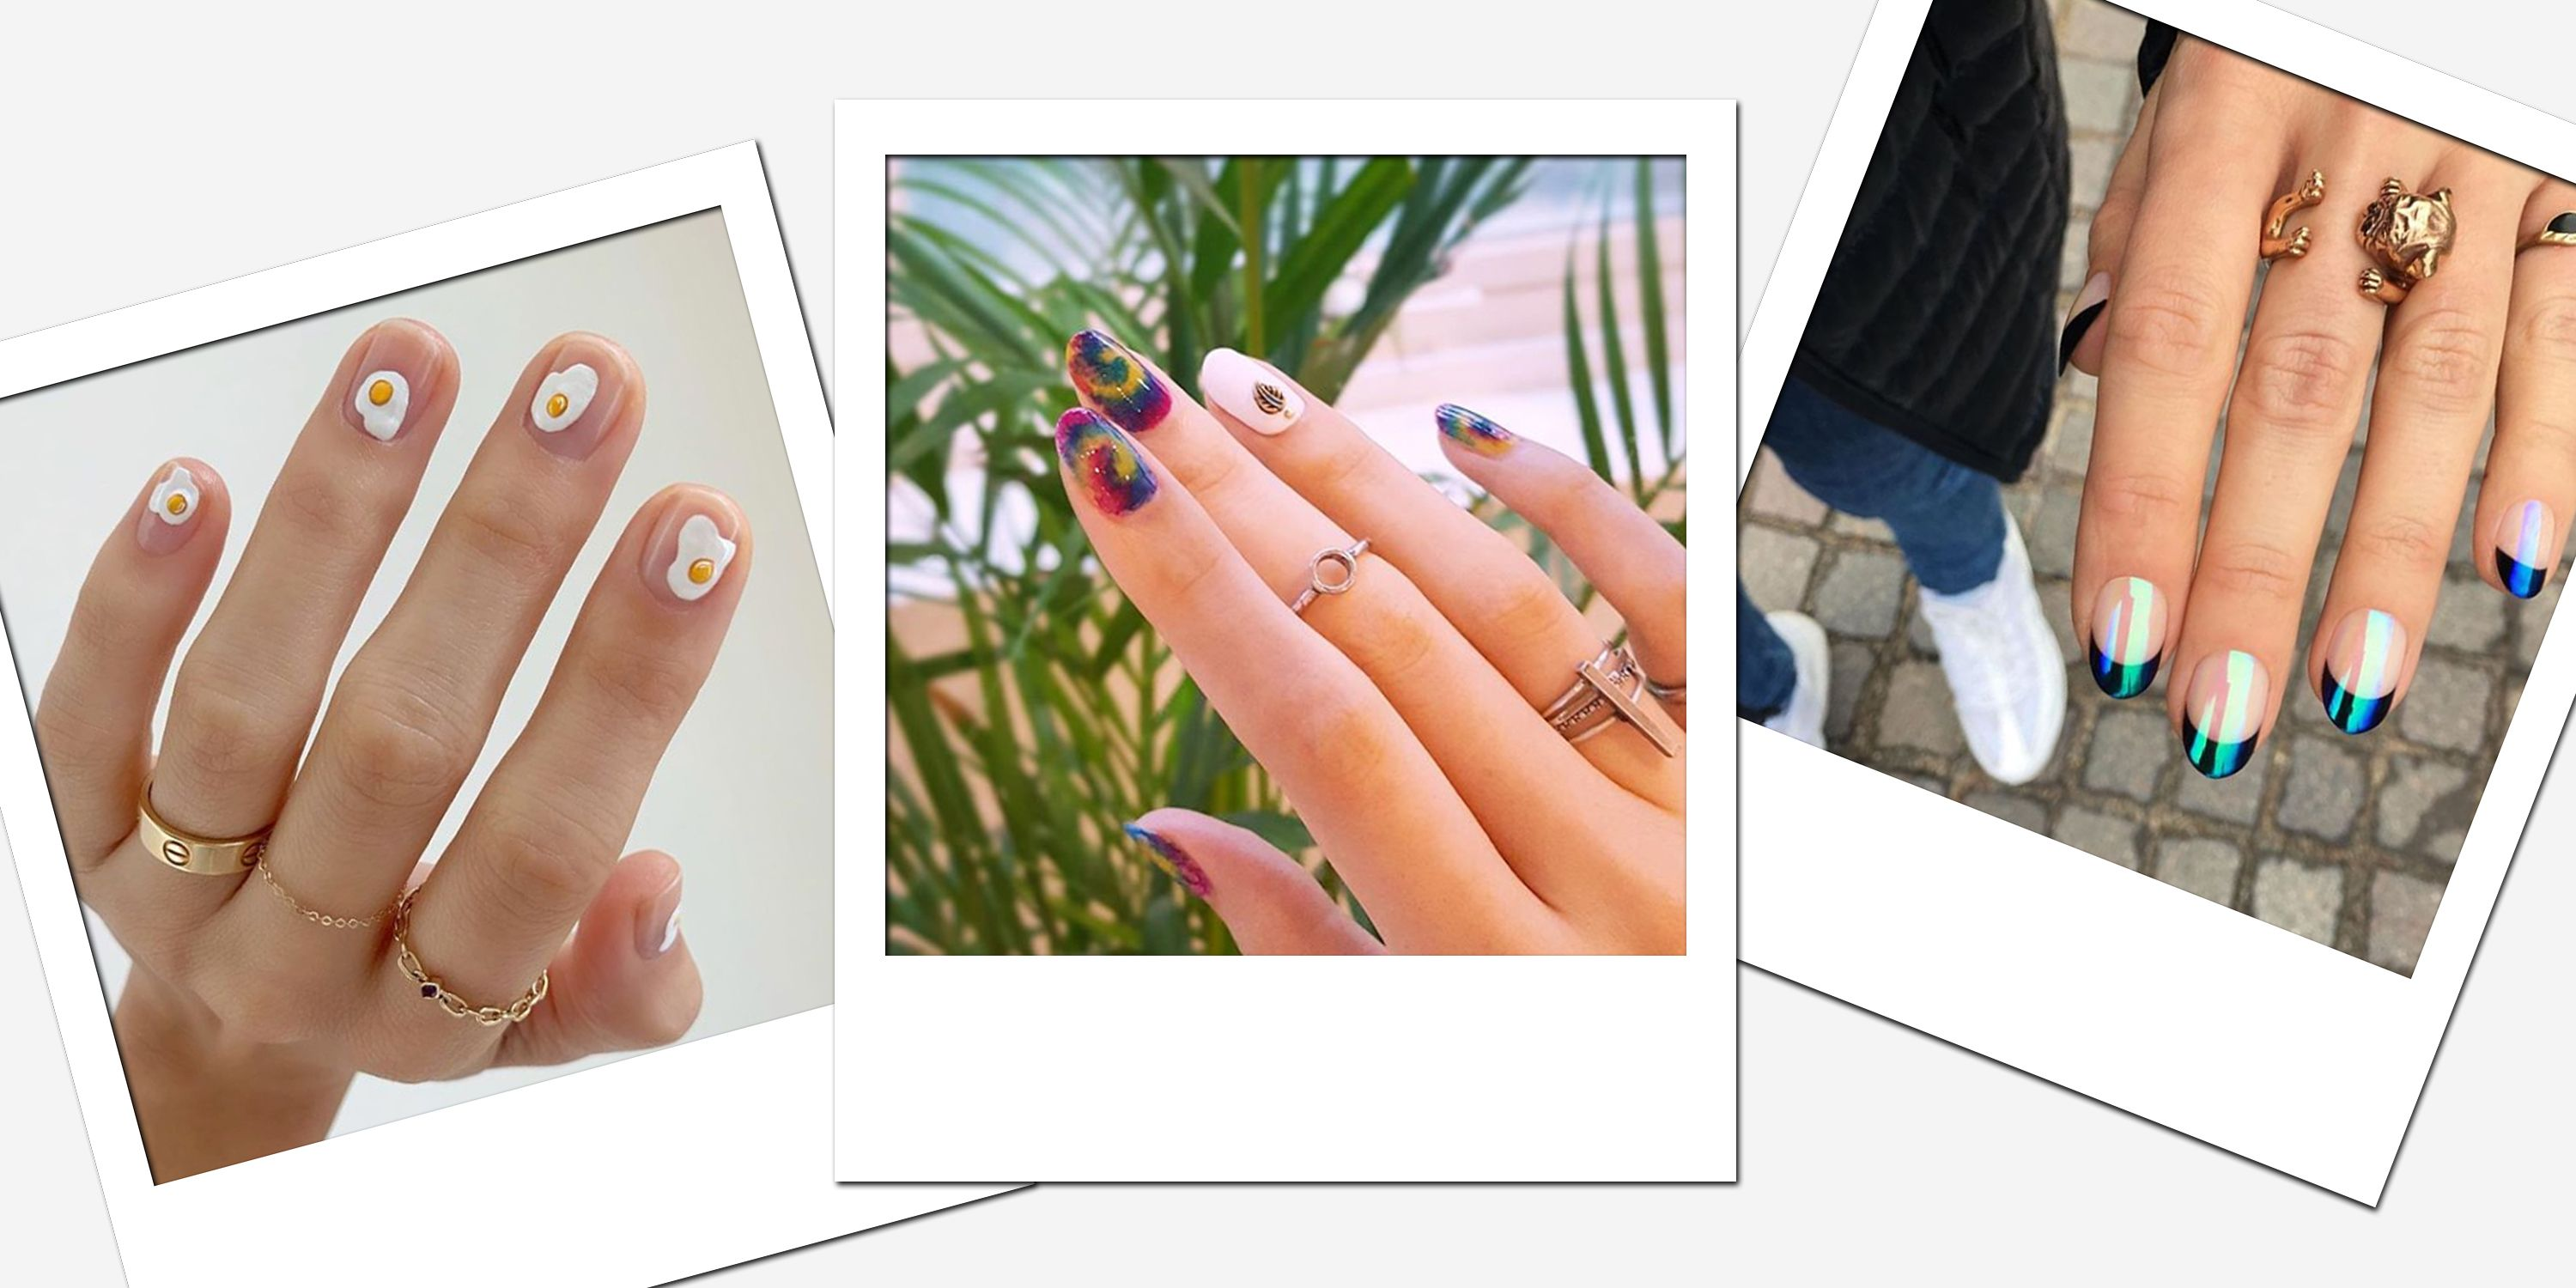 25 Top Nail Trends 2019 The Biggest Nail Art And Manicure Ideas